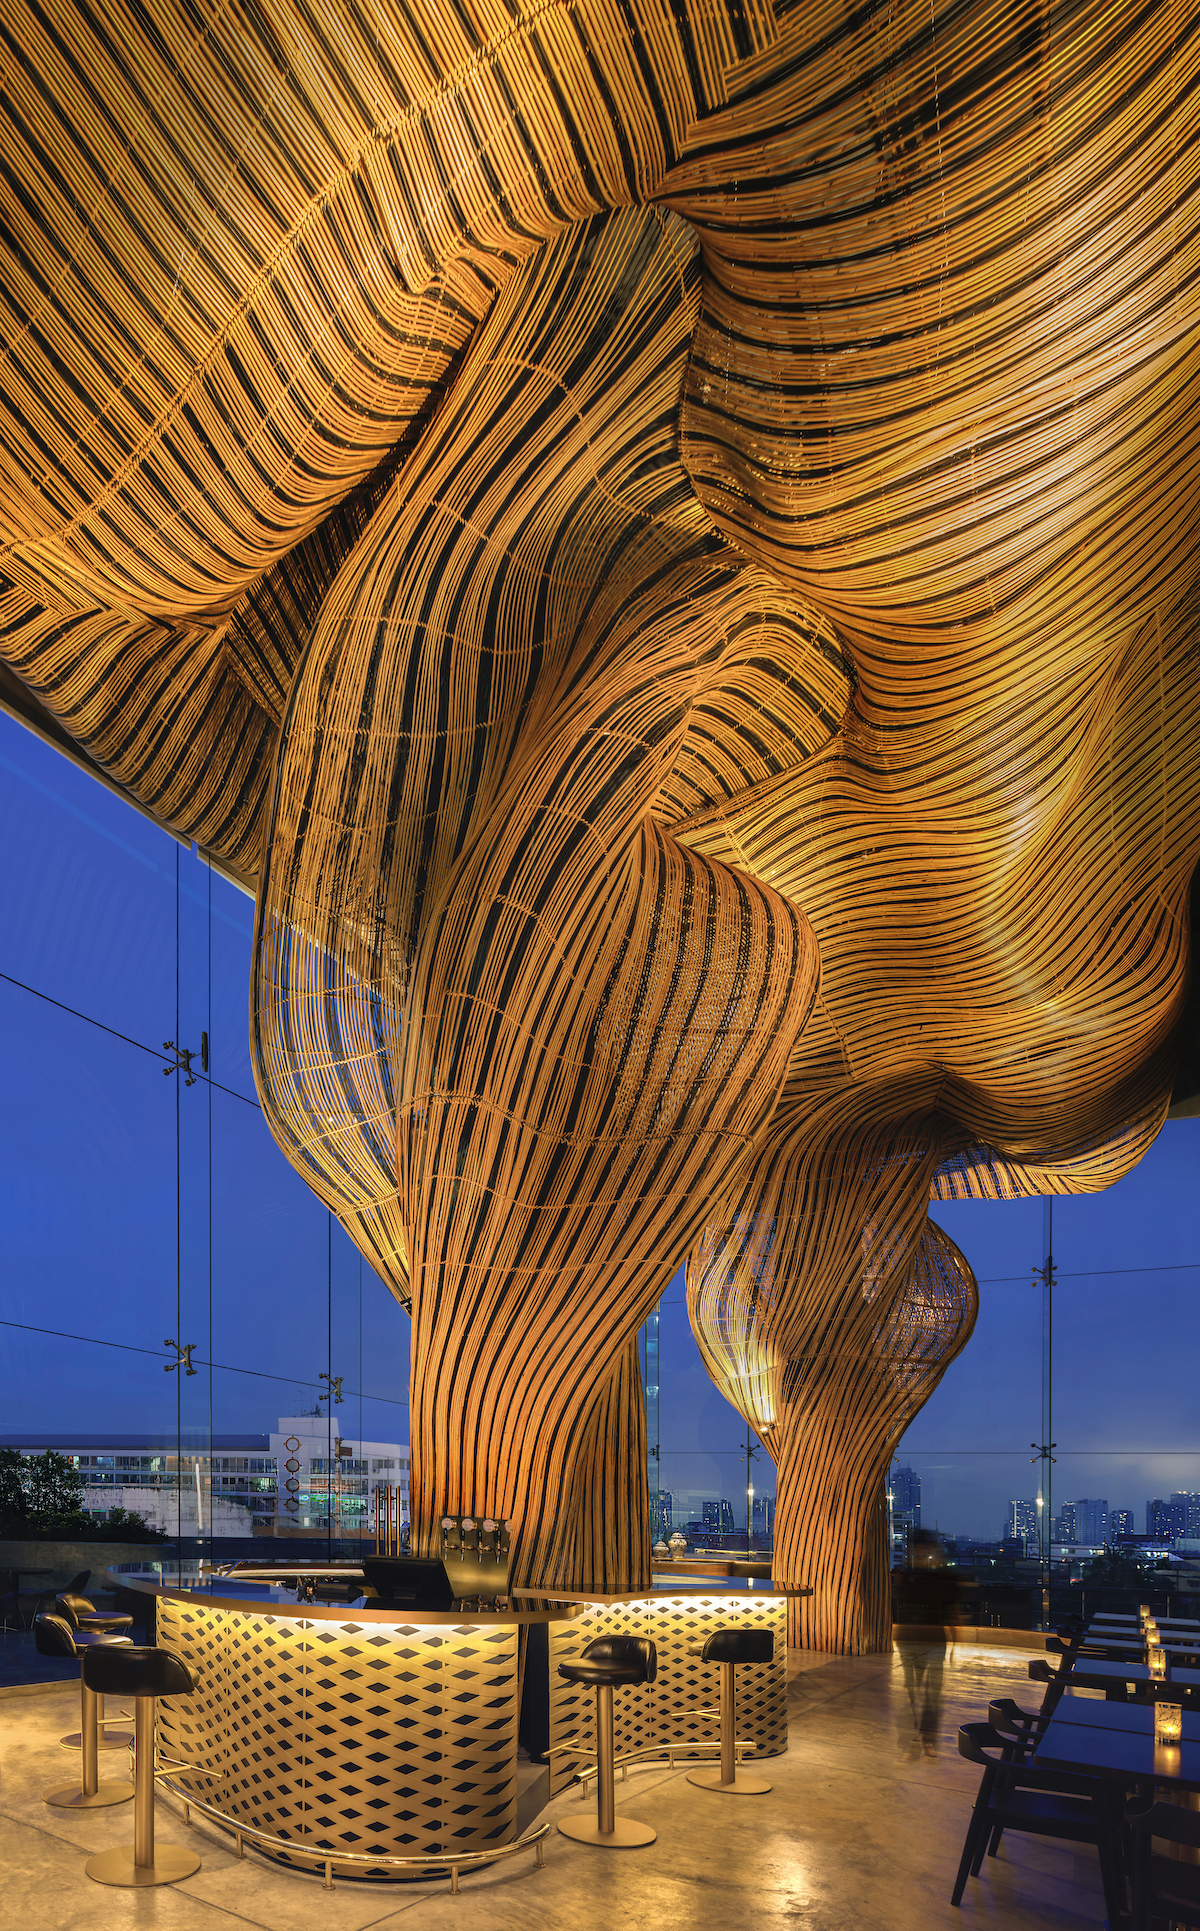 Architects Blend Technology and Craftsmanship to Create These Treelike Rattan Columns